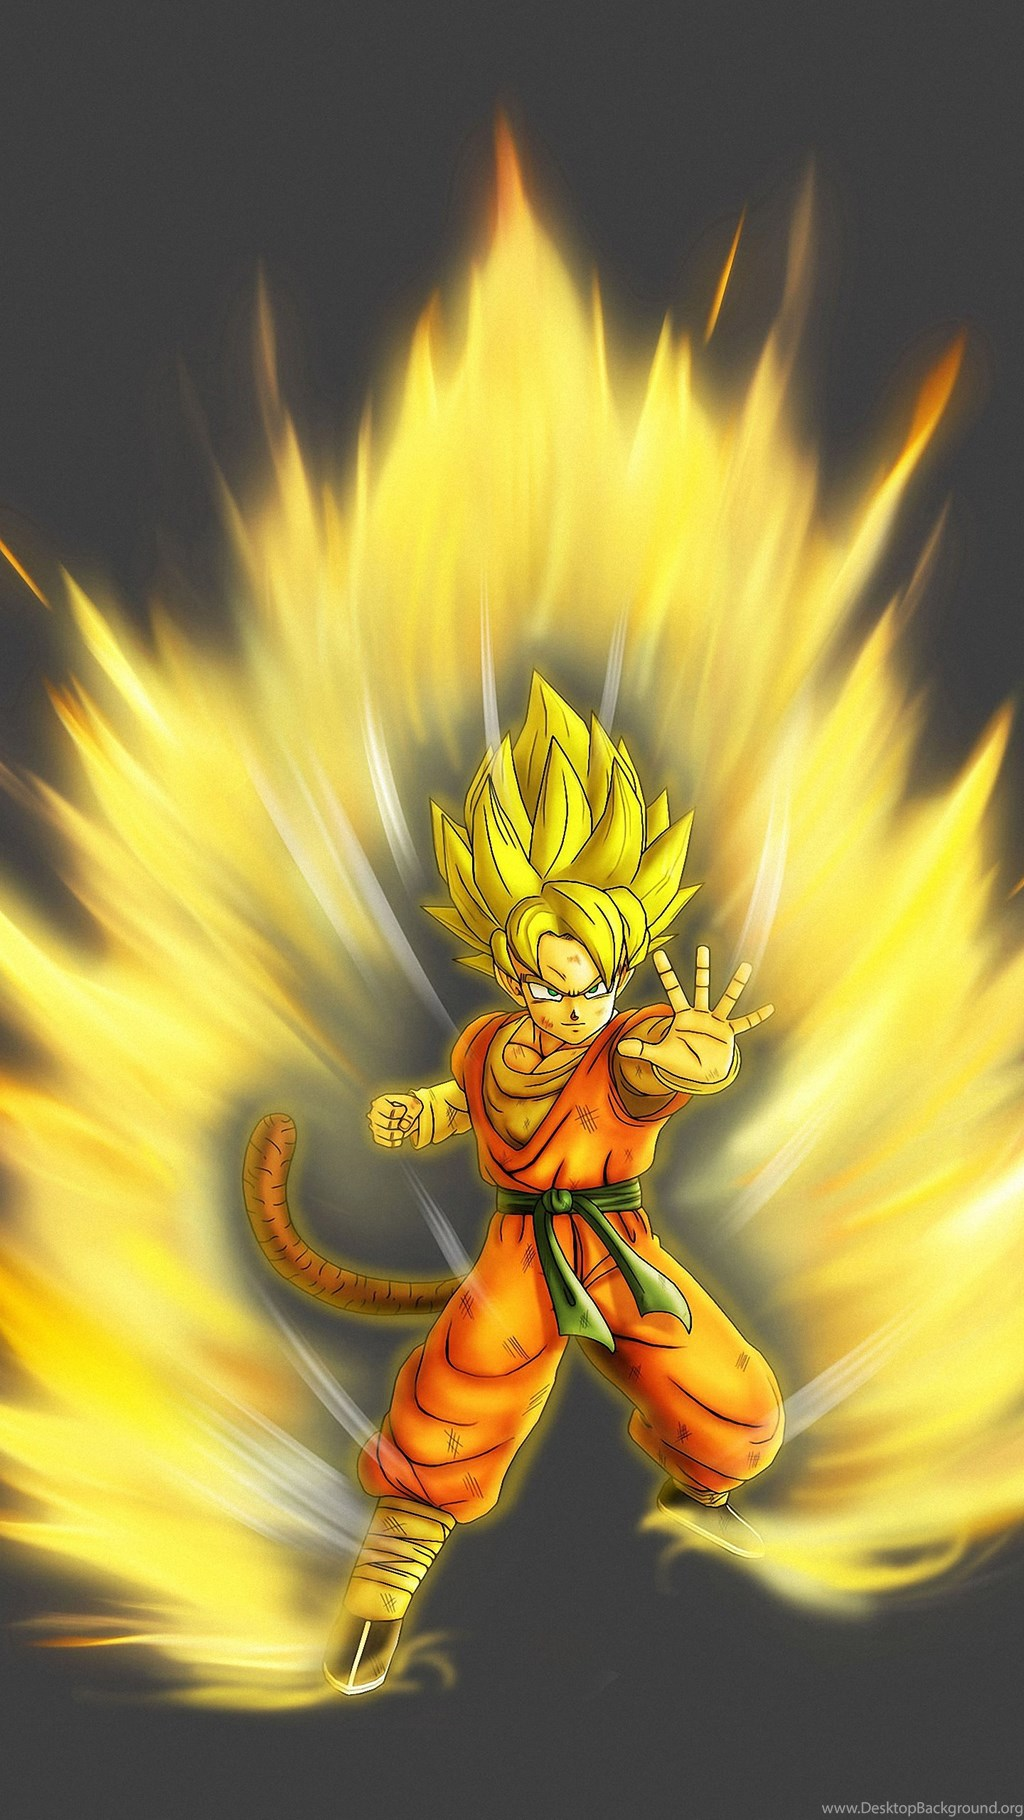 Anime Iphone 6s / Plus Wallpapers Hd - Full Hd Dragon Ball Z Wallpaper Iphone - HD Wallpaper